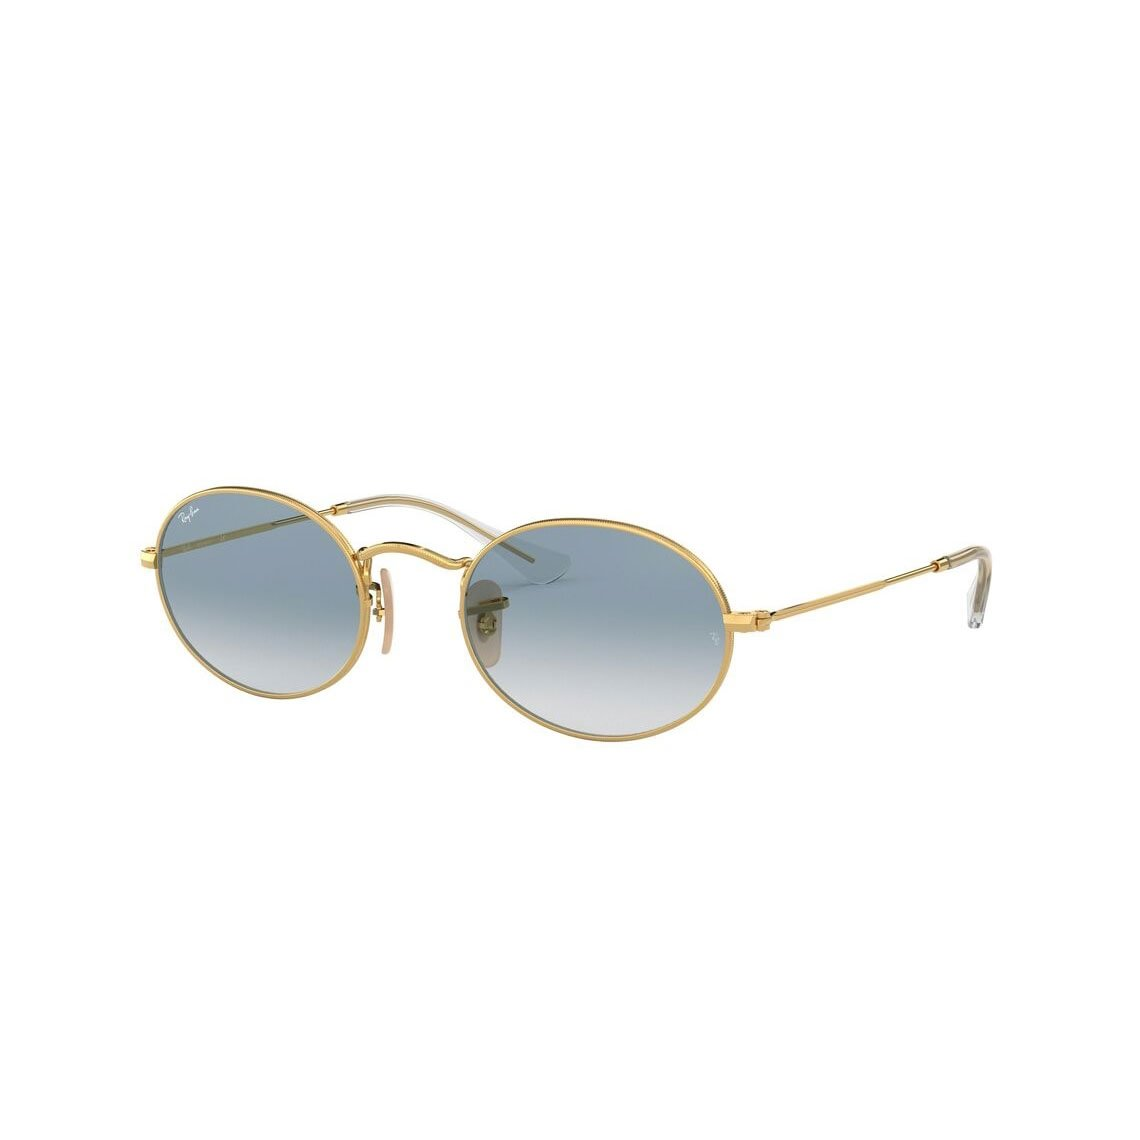 Ray-Ban Oval flat lenses RB3547N 001/3F 51